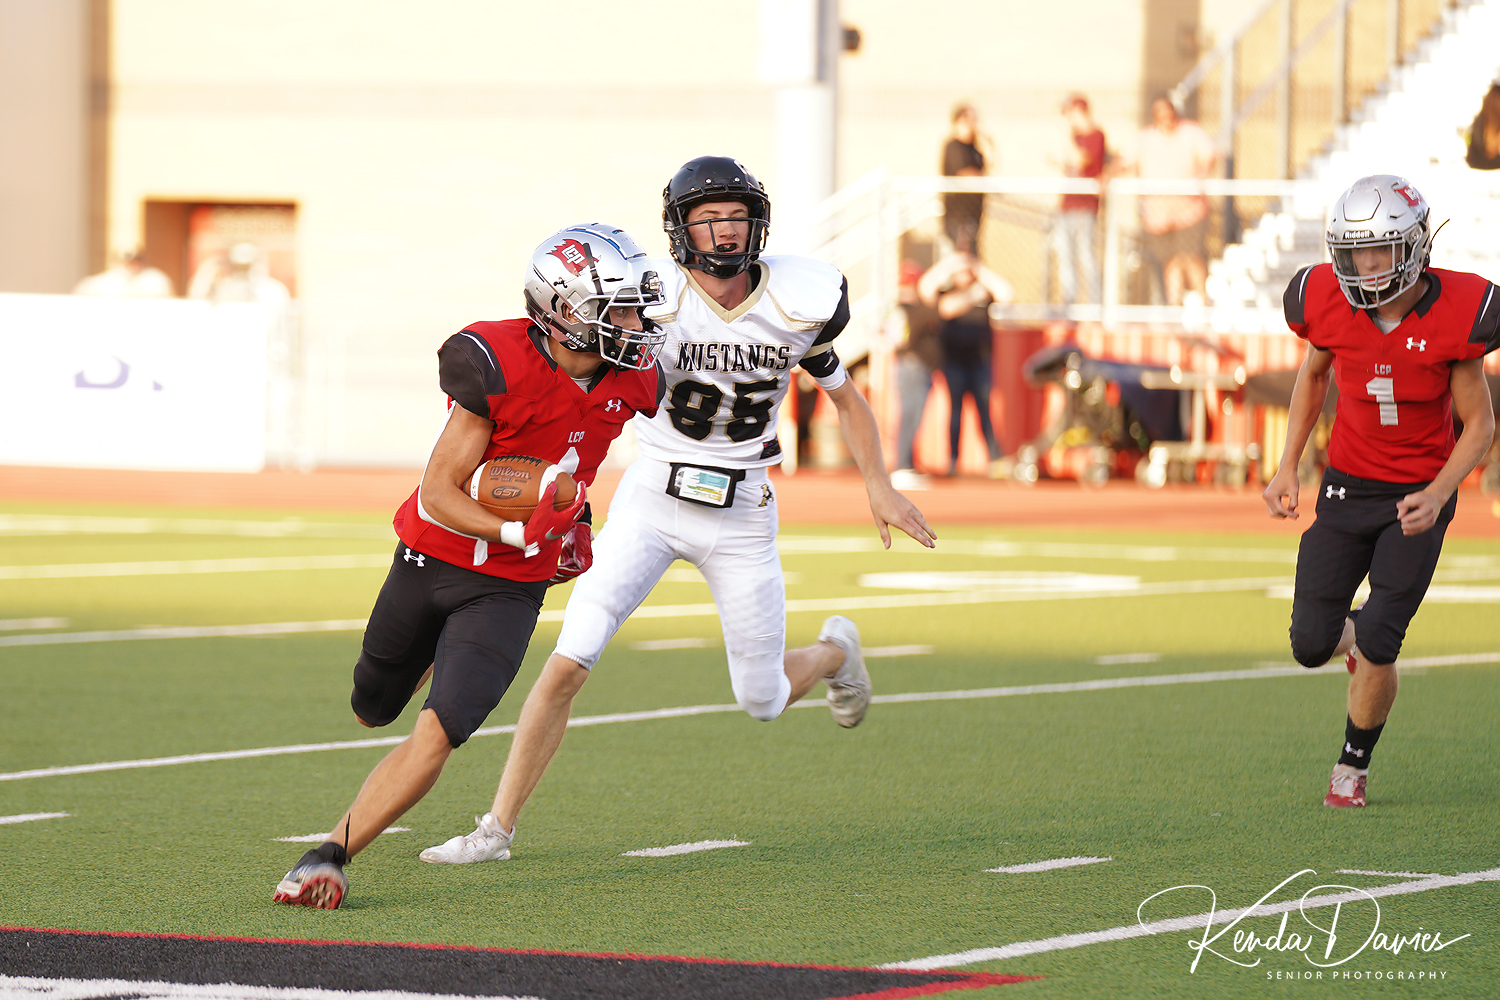 #4 Rylan Wilcox, a junior for the Pirates, picks up some yards leaving a Mustang in the dust.